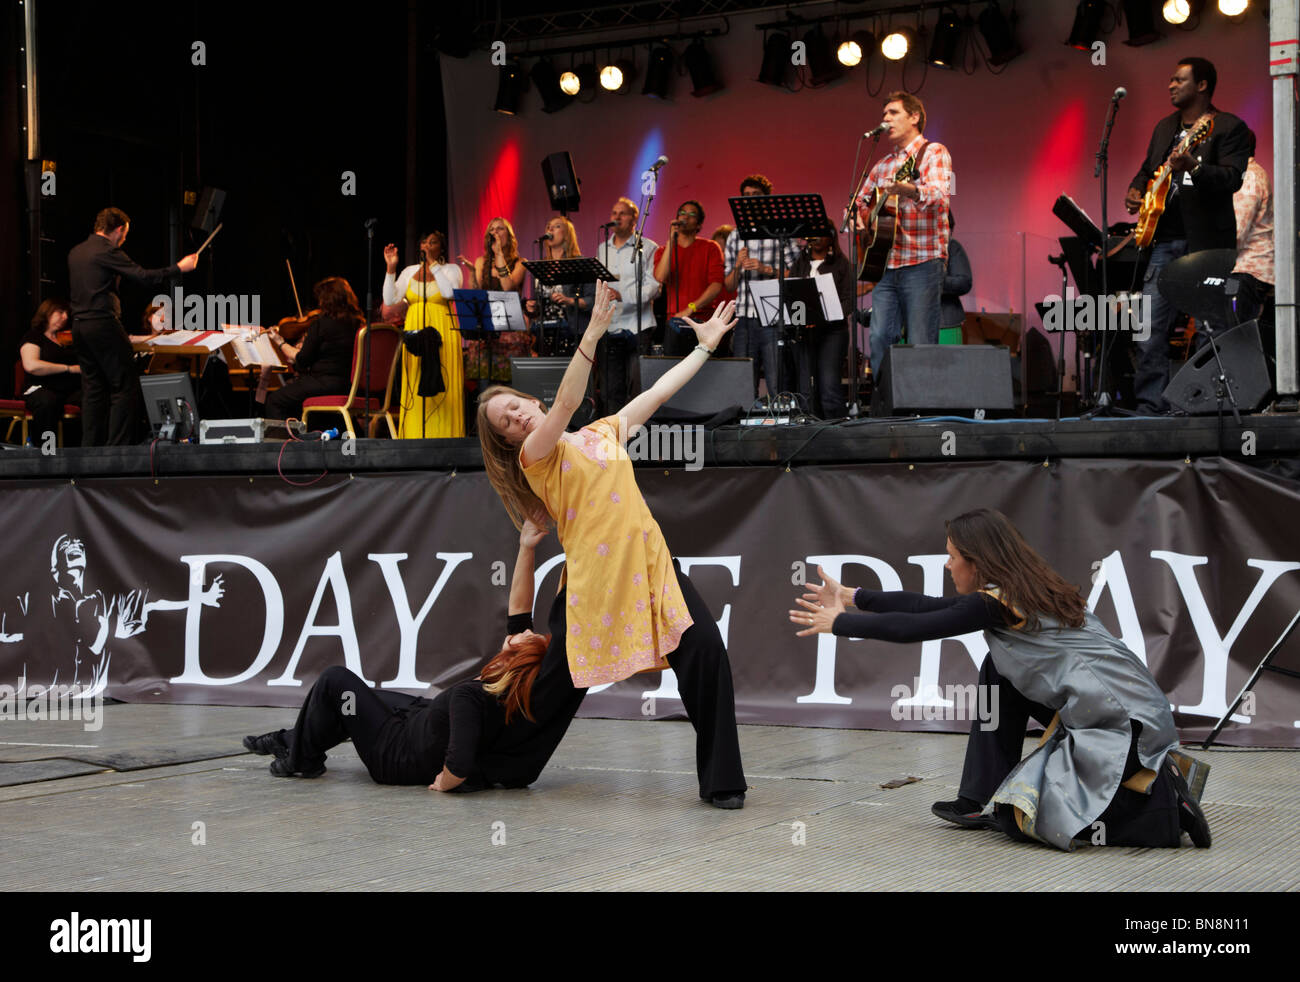 Dave Bilbrough singing on stage and MiW dancers at the 2010 London Global Day of Prayer. - Stock Image